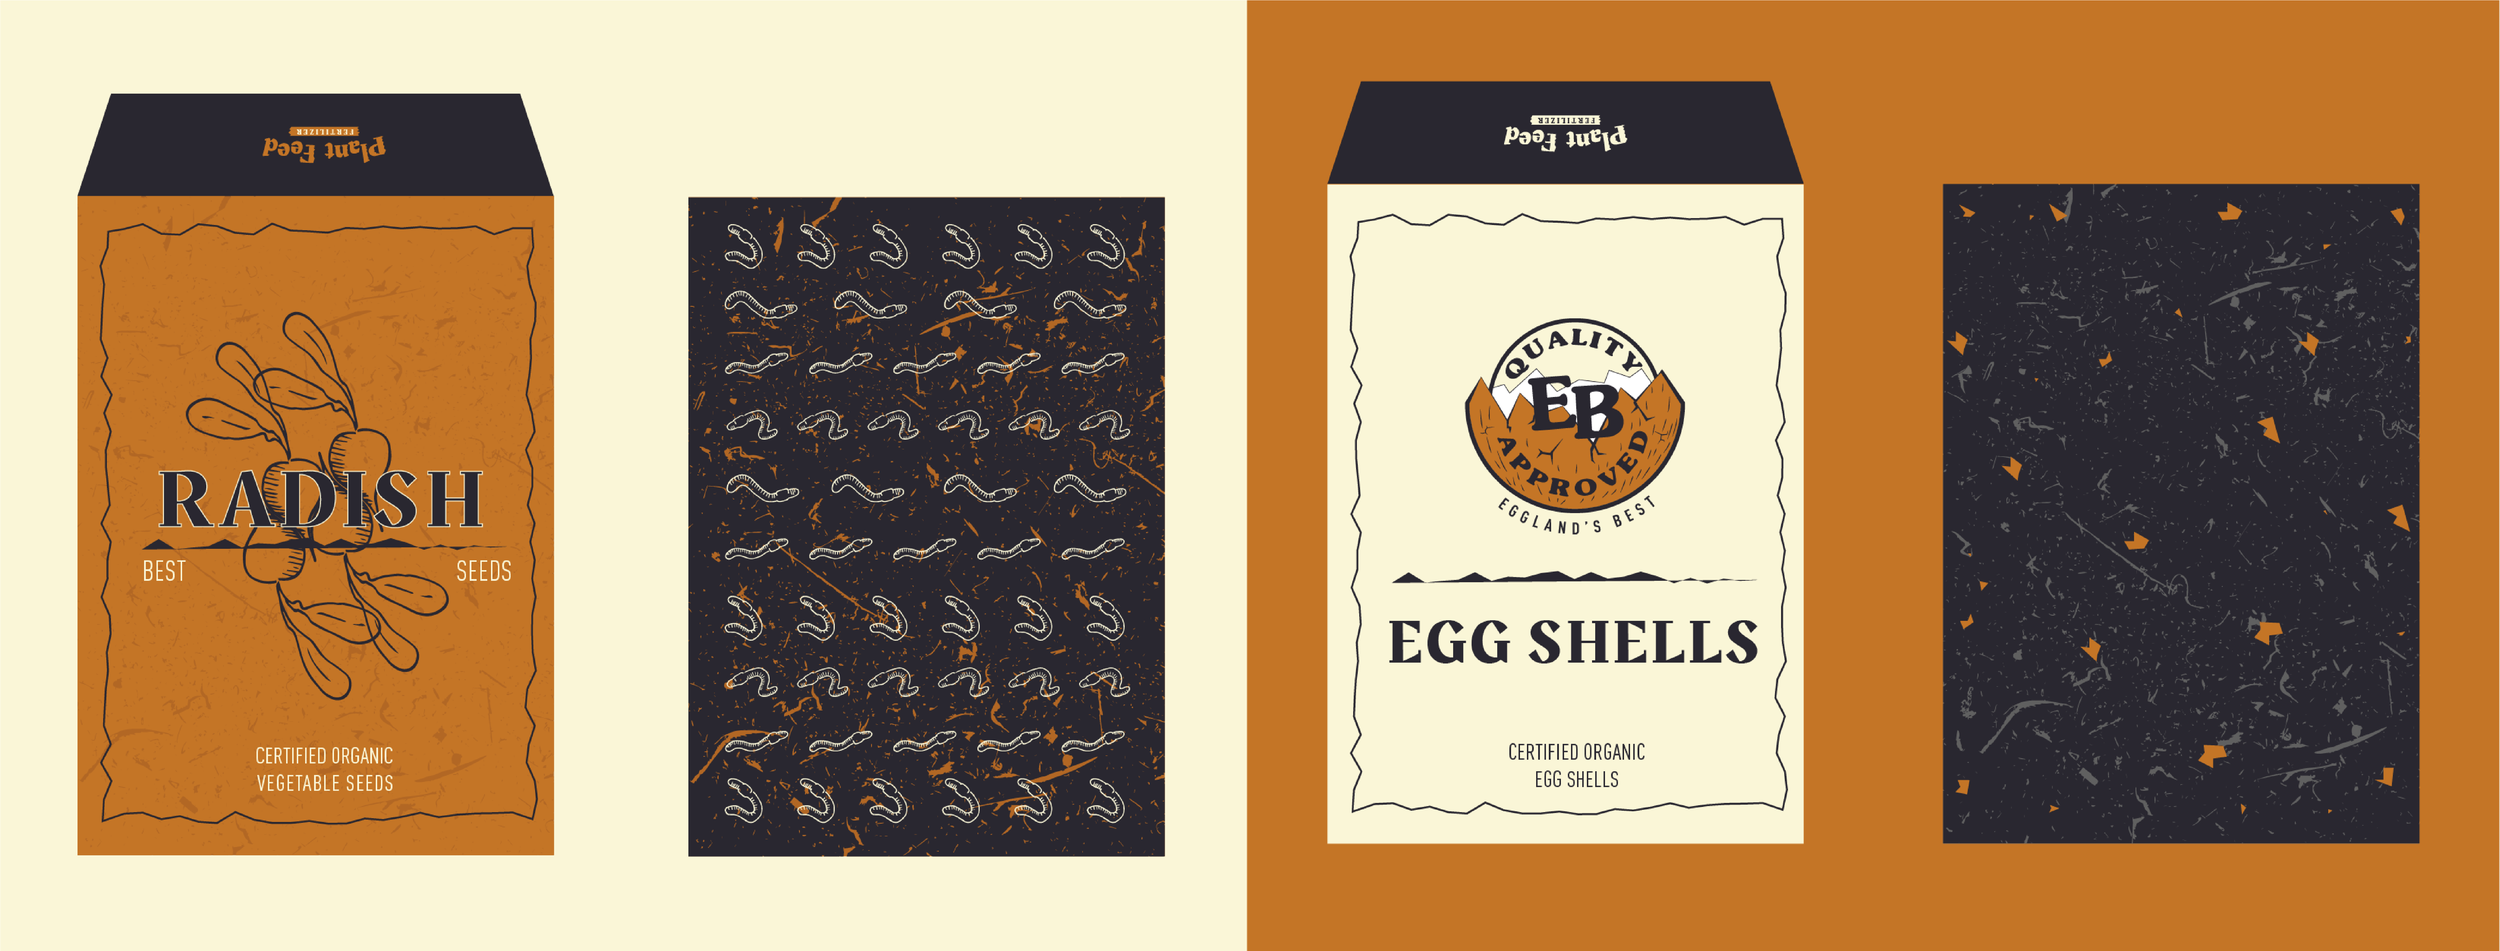 Seed and eggshell sample packets will be attached to the mailer.  Left: front of seed packet, back of seed packet  Right: front of eggshell packet, back of eggshell packet